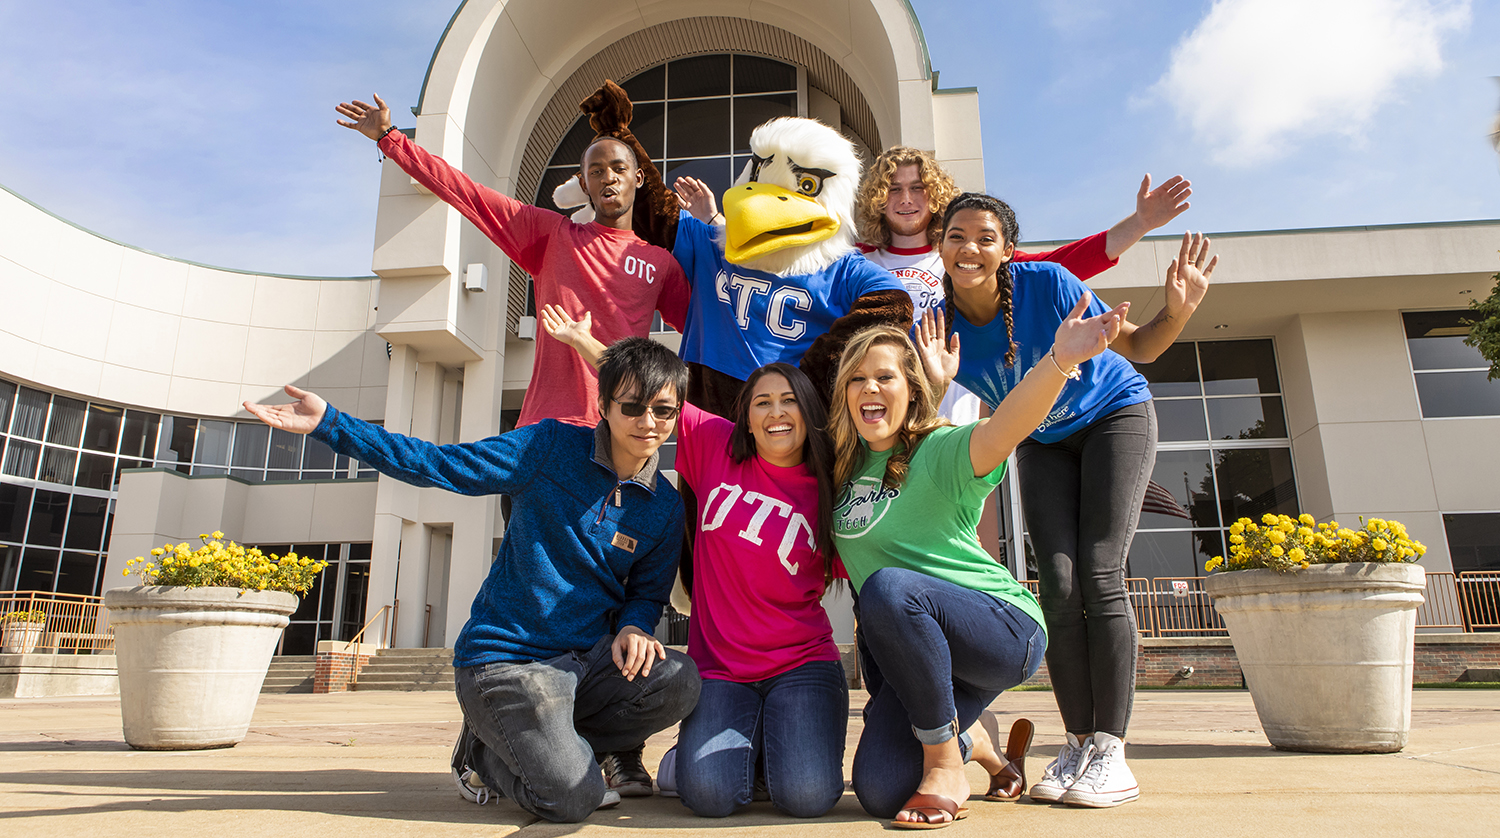 Ozzy the Eagle poses with OTC students on the Springfield campus plaza